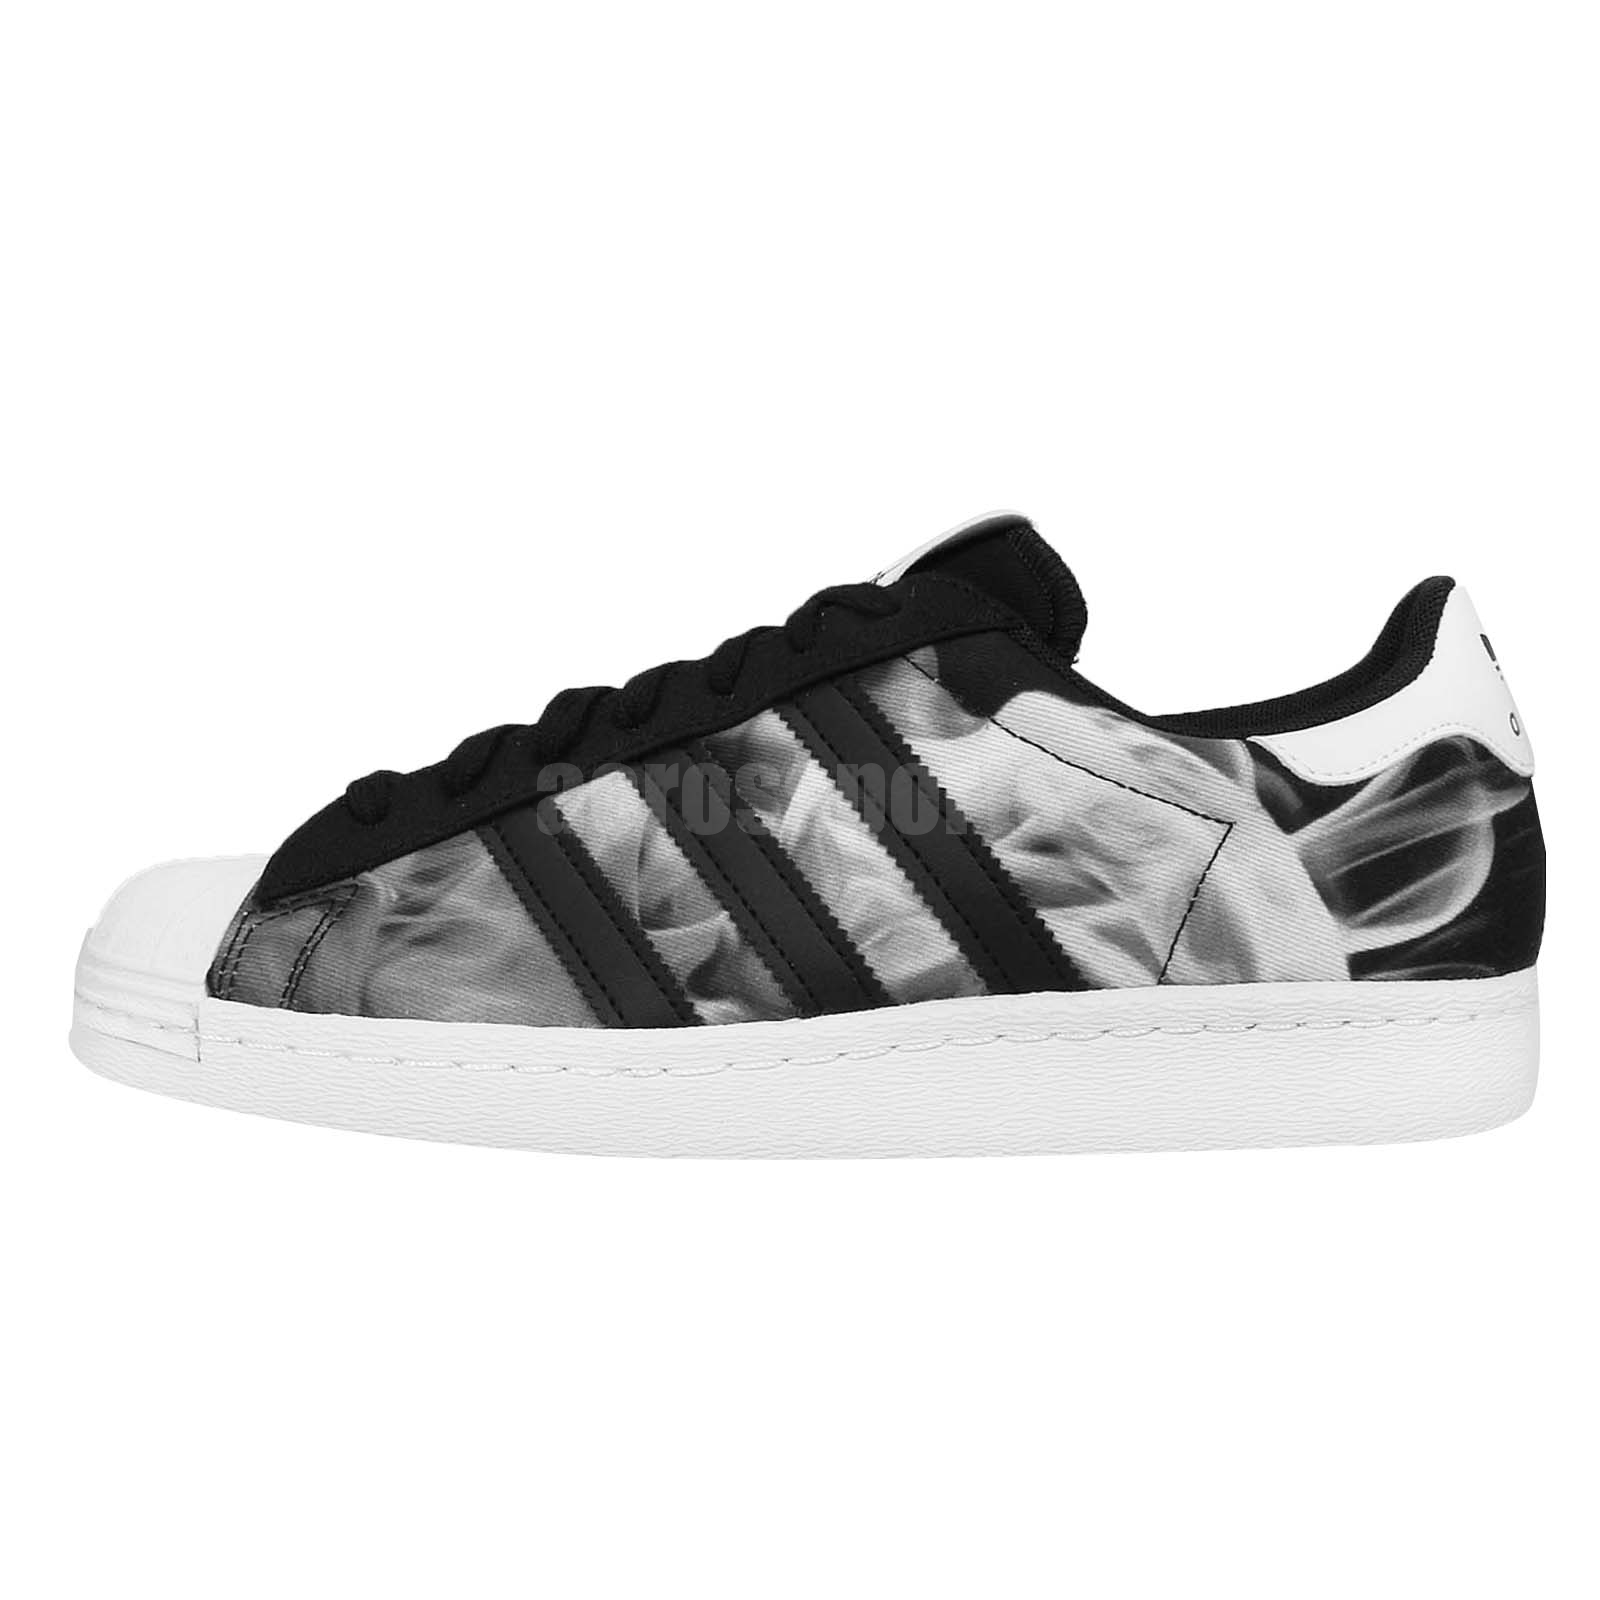 adidas superstar qatar